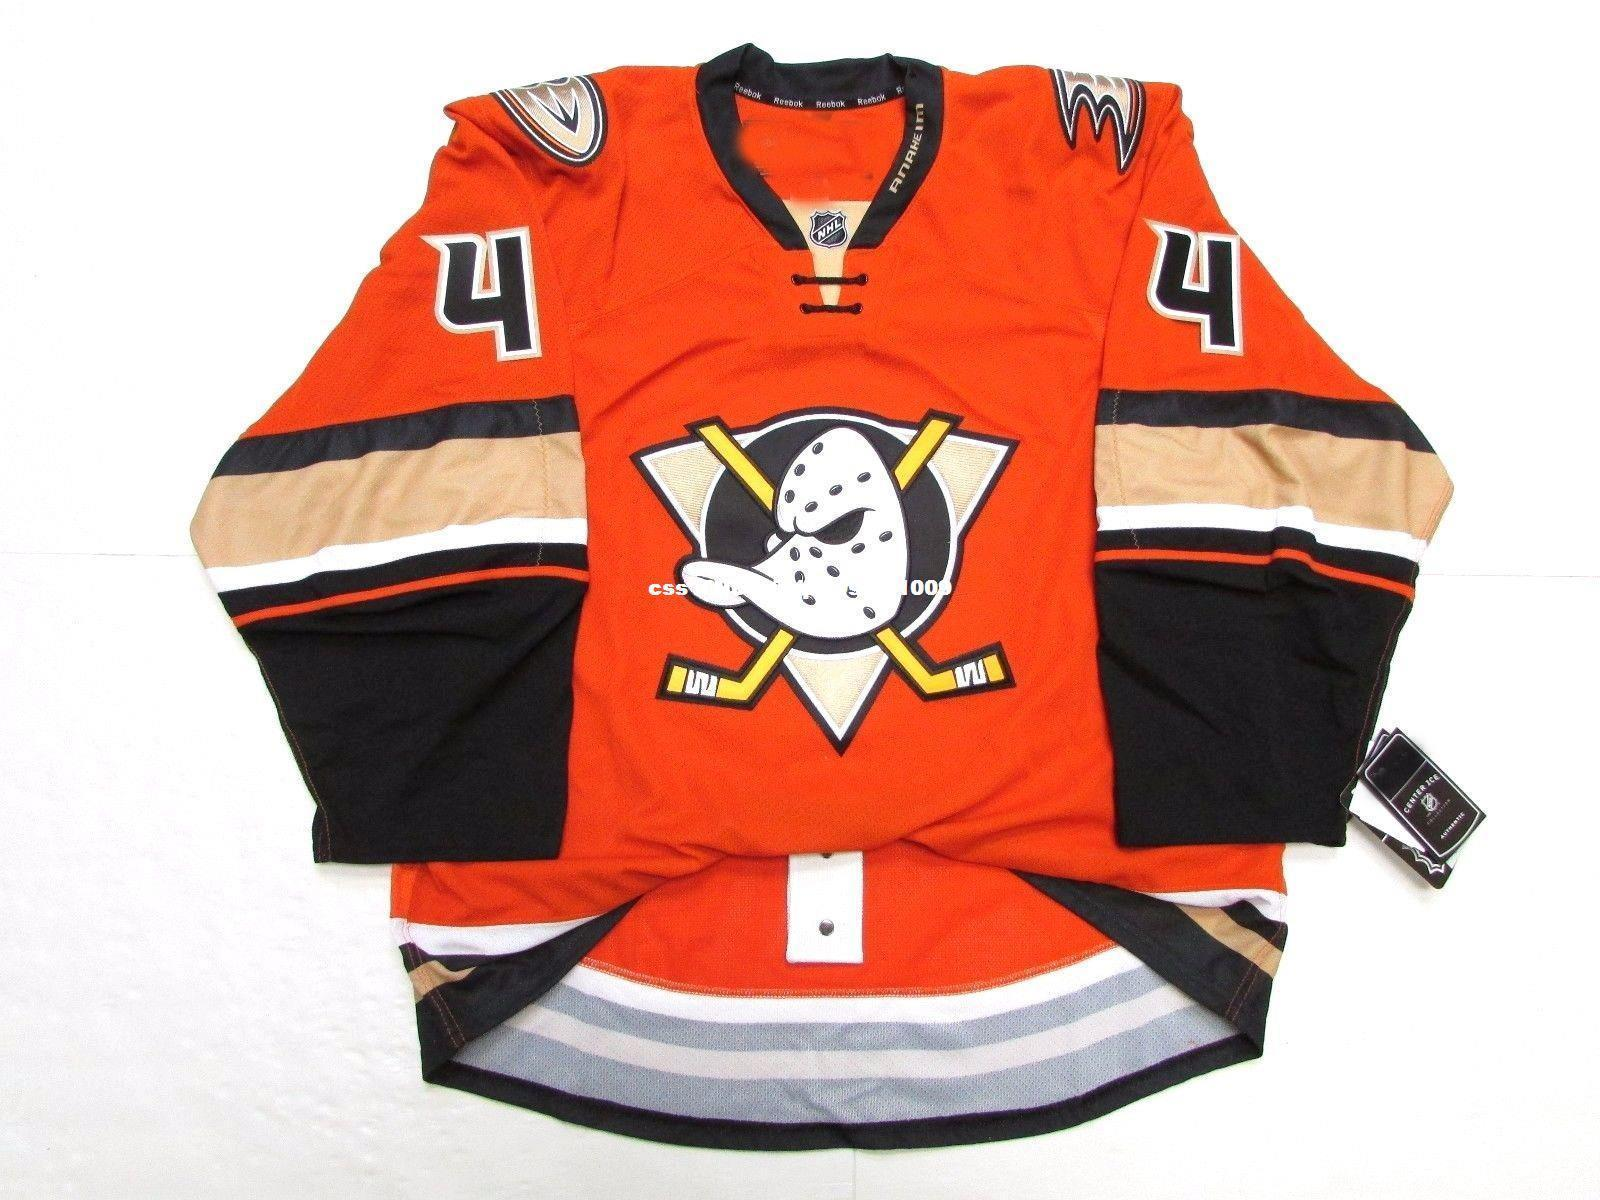 Cheap custom CAM FOWLER ANAHEIM DUCKS THIRD ORANGE EDGE 2.0 7287 JERSEY stitch add any number any name Mens Hockey Jersey XS-6XL